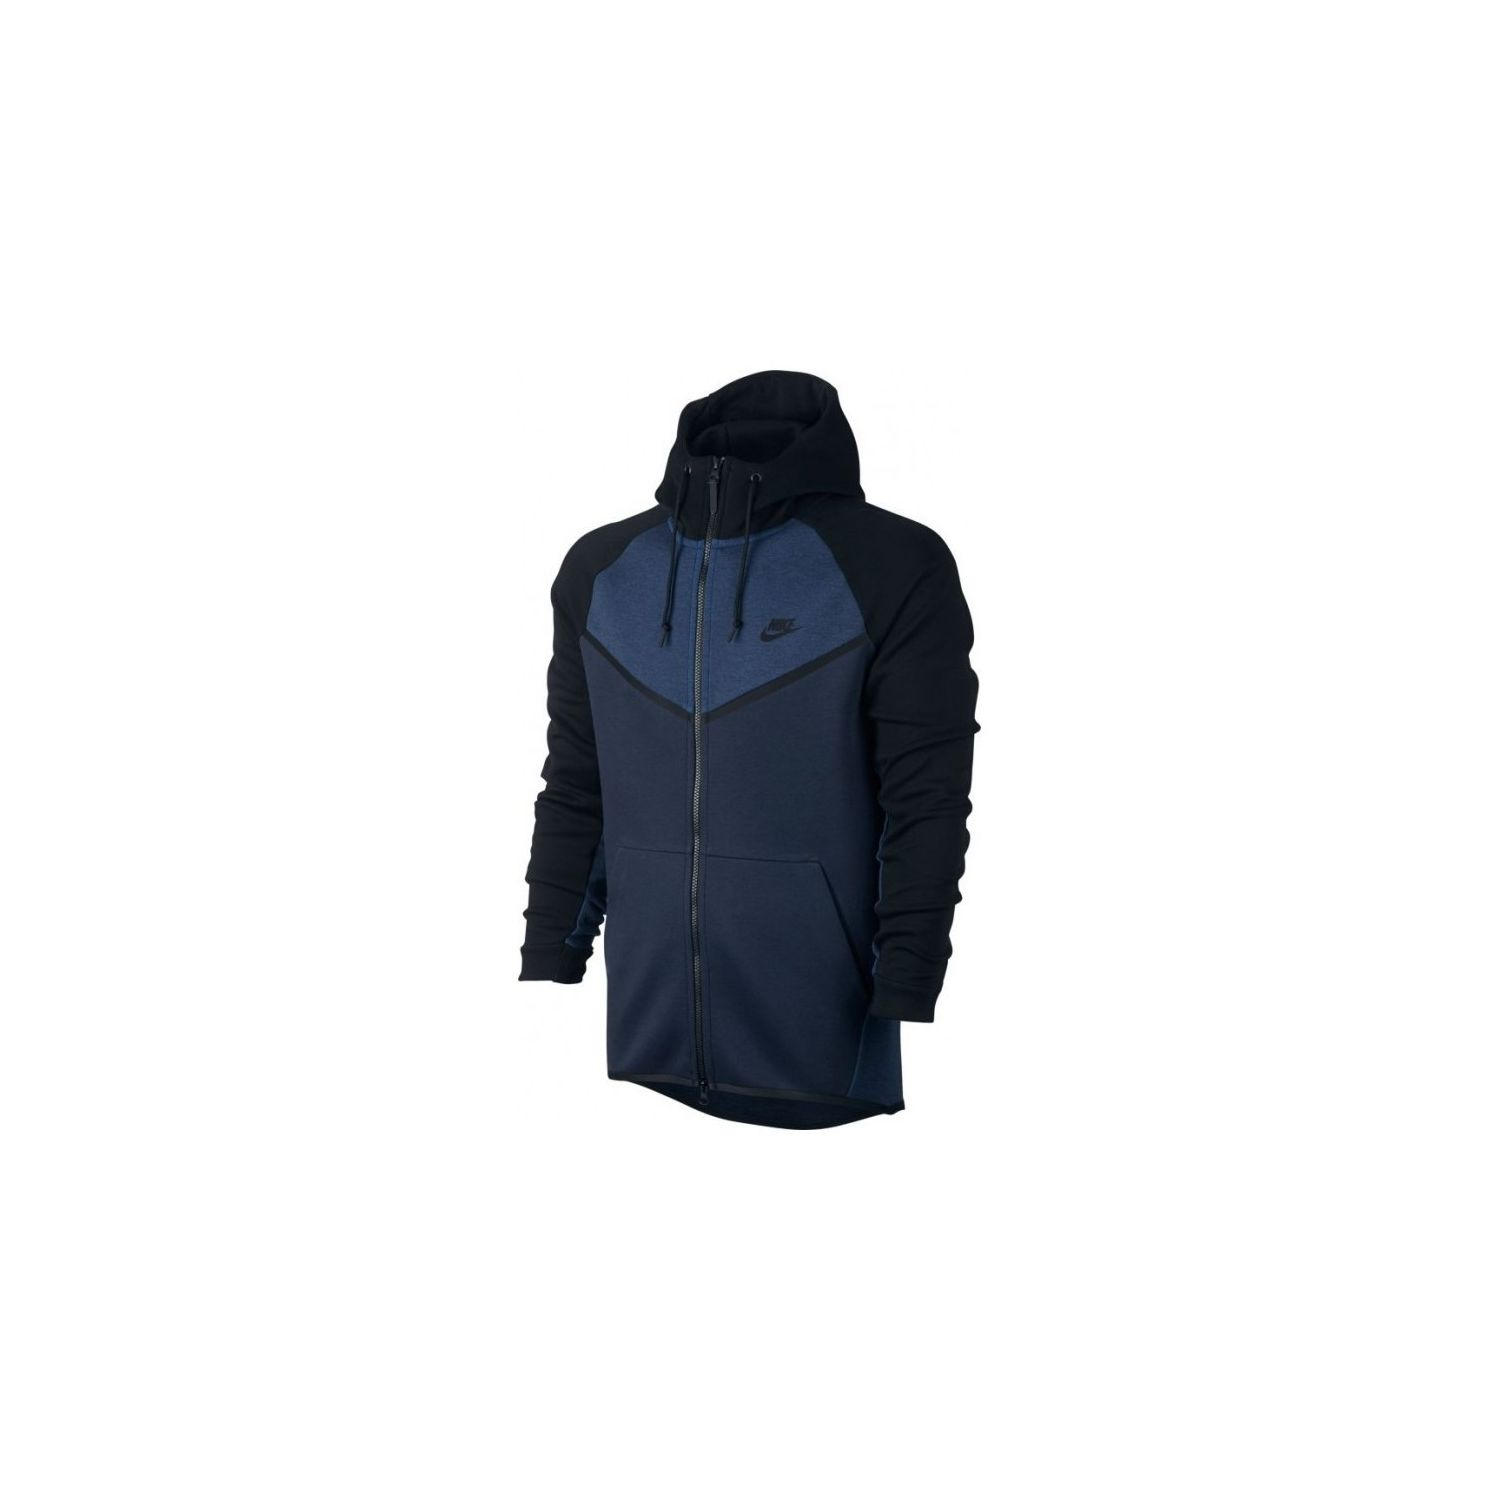 6c586cd014f09 NIKE- Sweat à capuche Sportswear Tech Fleece Windrunner - 885904-473 - Noir